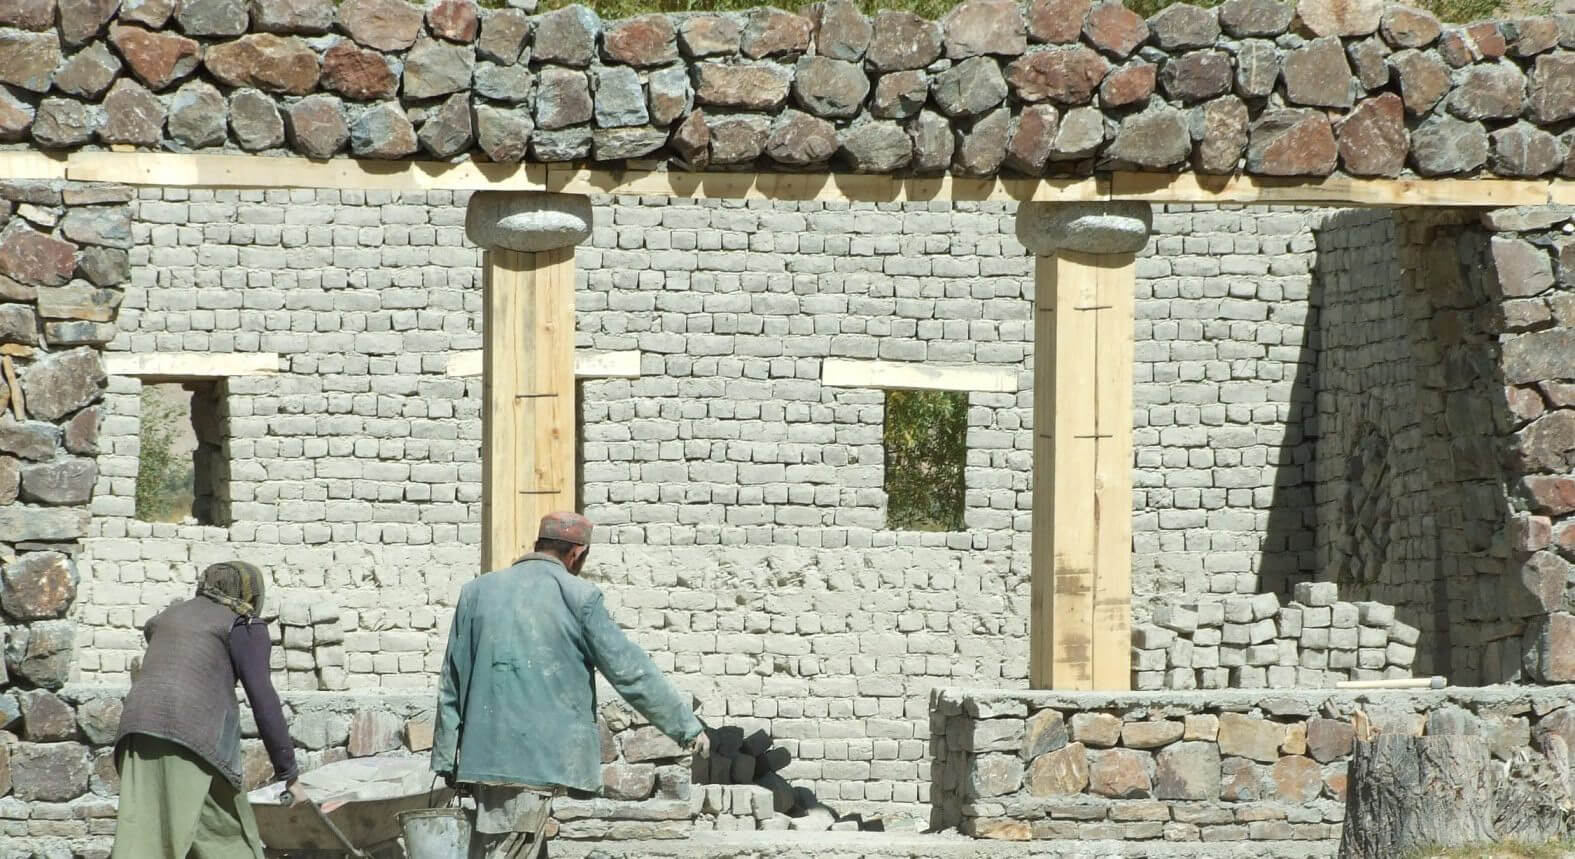 Construction of House with Dancing Windows for Pamir National Park (Wakhan corridor, Afghanistan) | Cross Border Conversations | Pradip Krishen X Prof. Anne Feenstra | STIR X LOCO Design